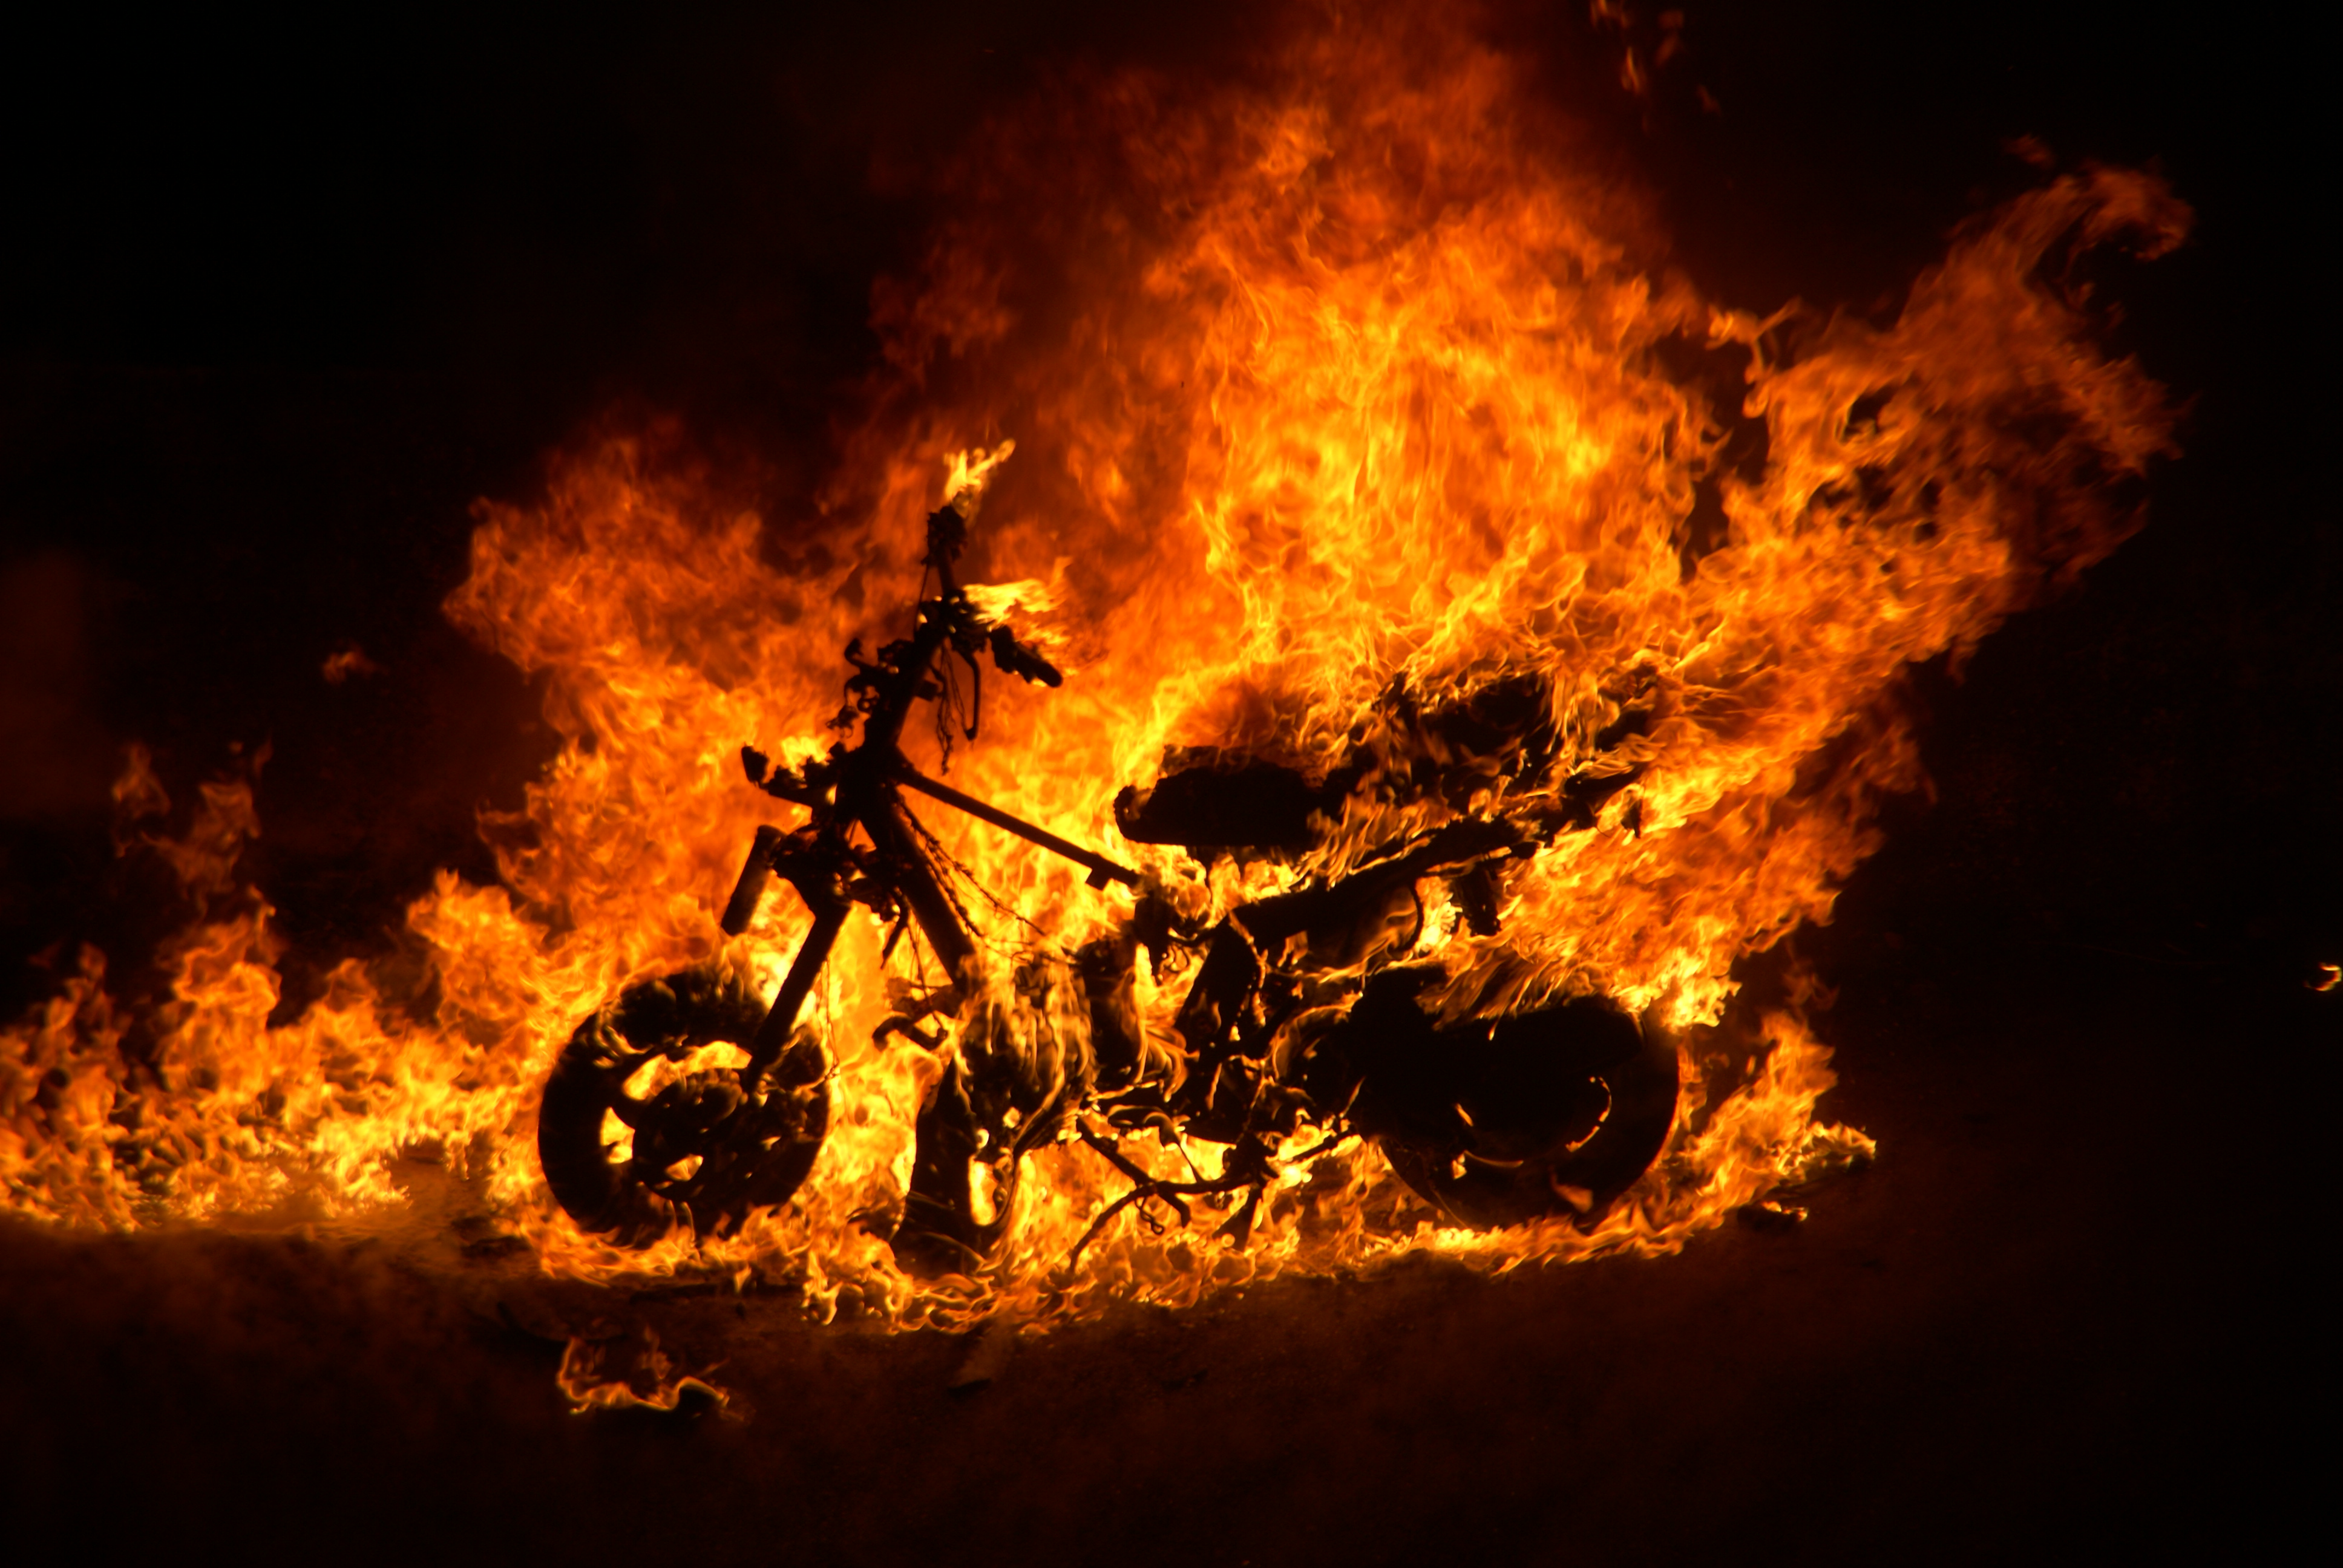 Ghost Rider Bike Hd Wallpaper 301 Moved Permanently